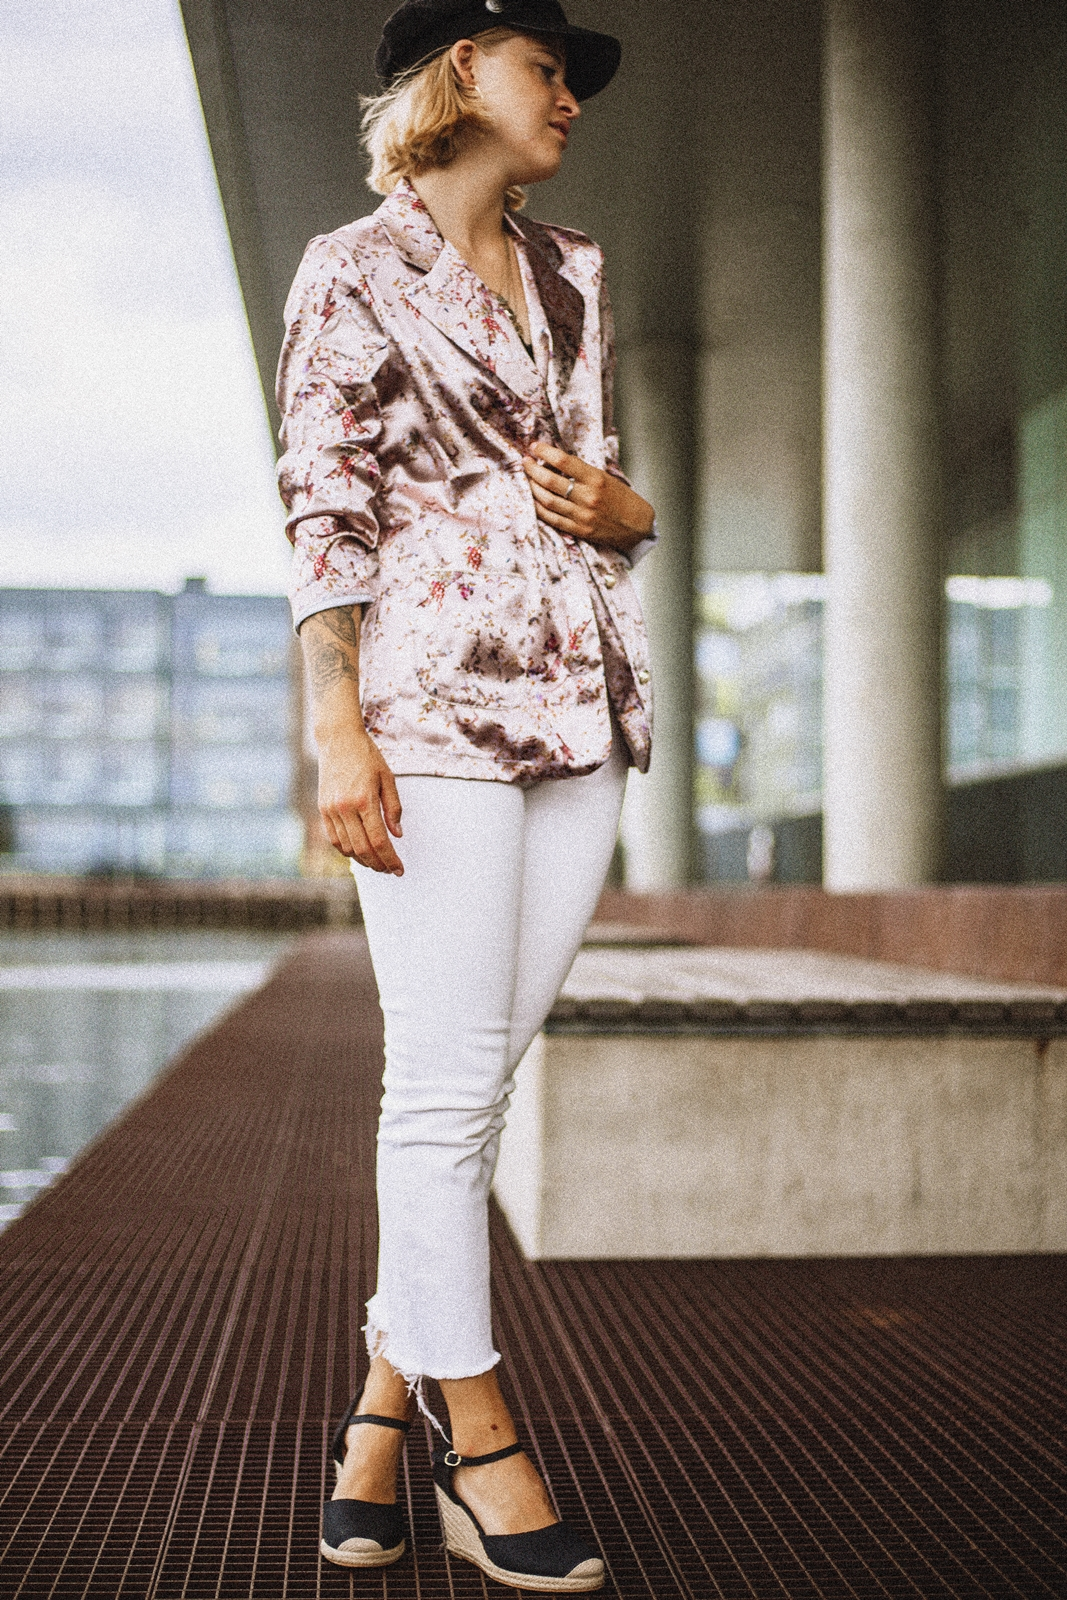 floral satin blazer styled with bakerboy hat and layered pendant necklace and earrings and also white jeans and summer wedges